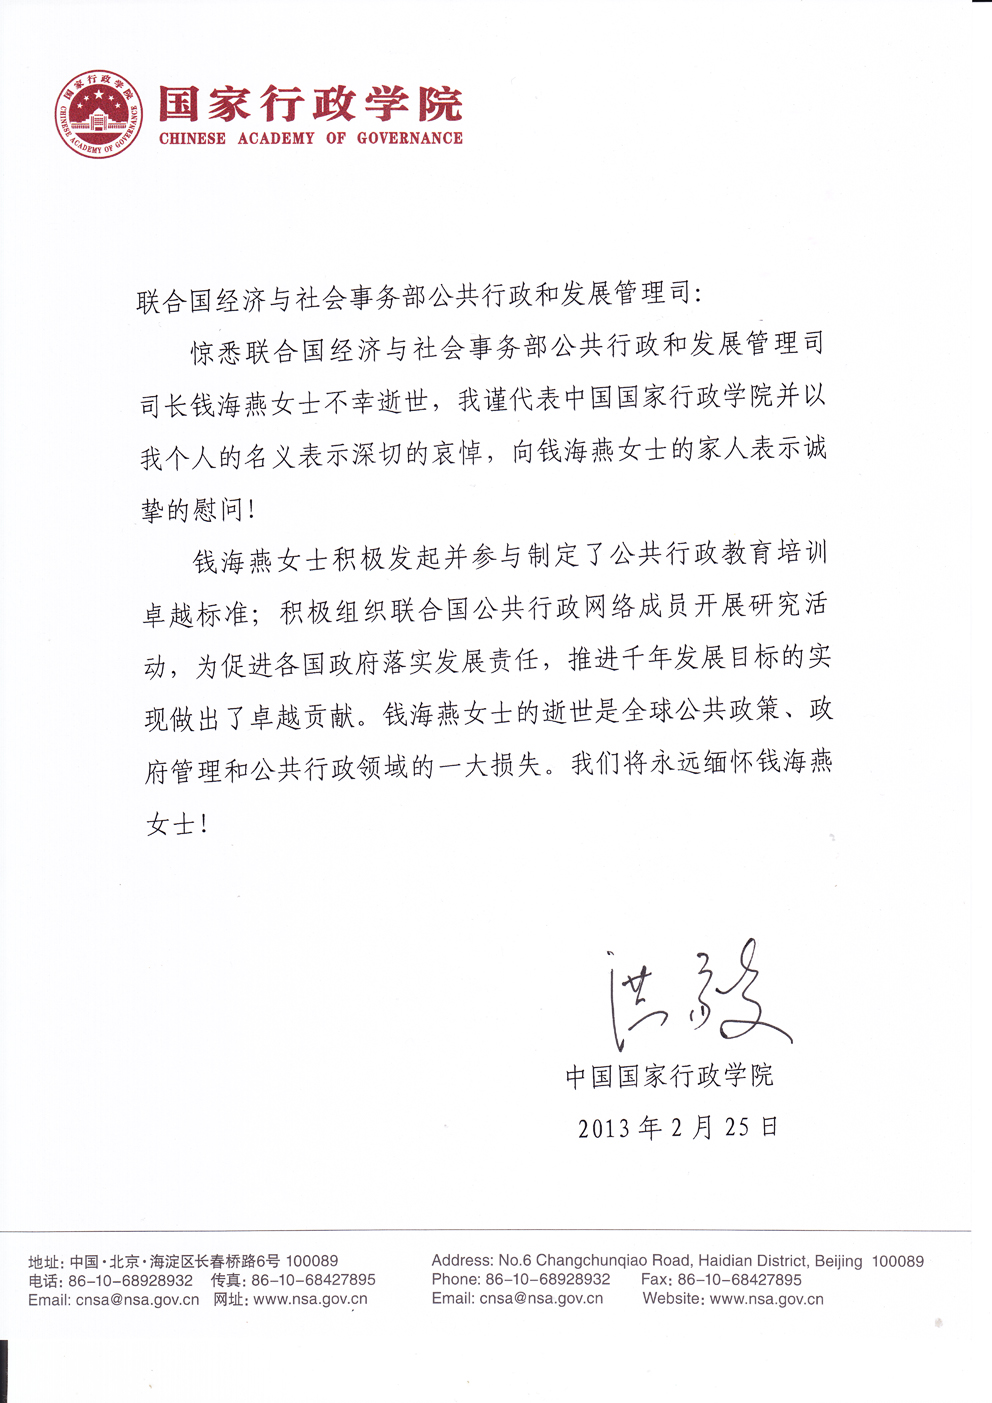 How To Write A Letter To Friend In Chinese